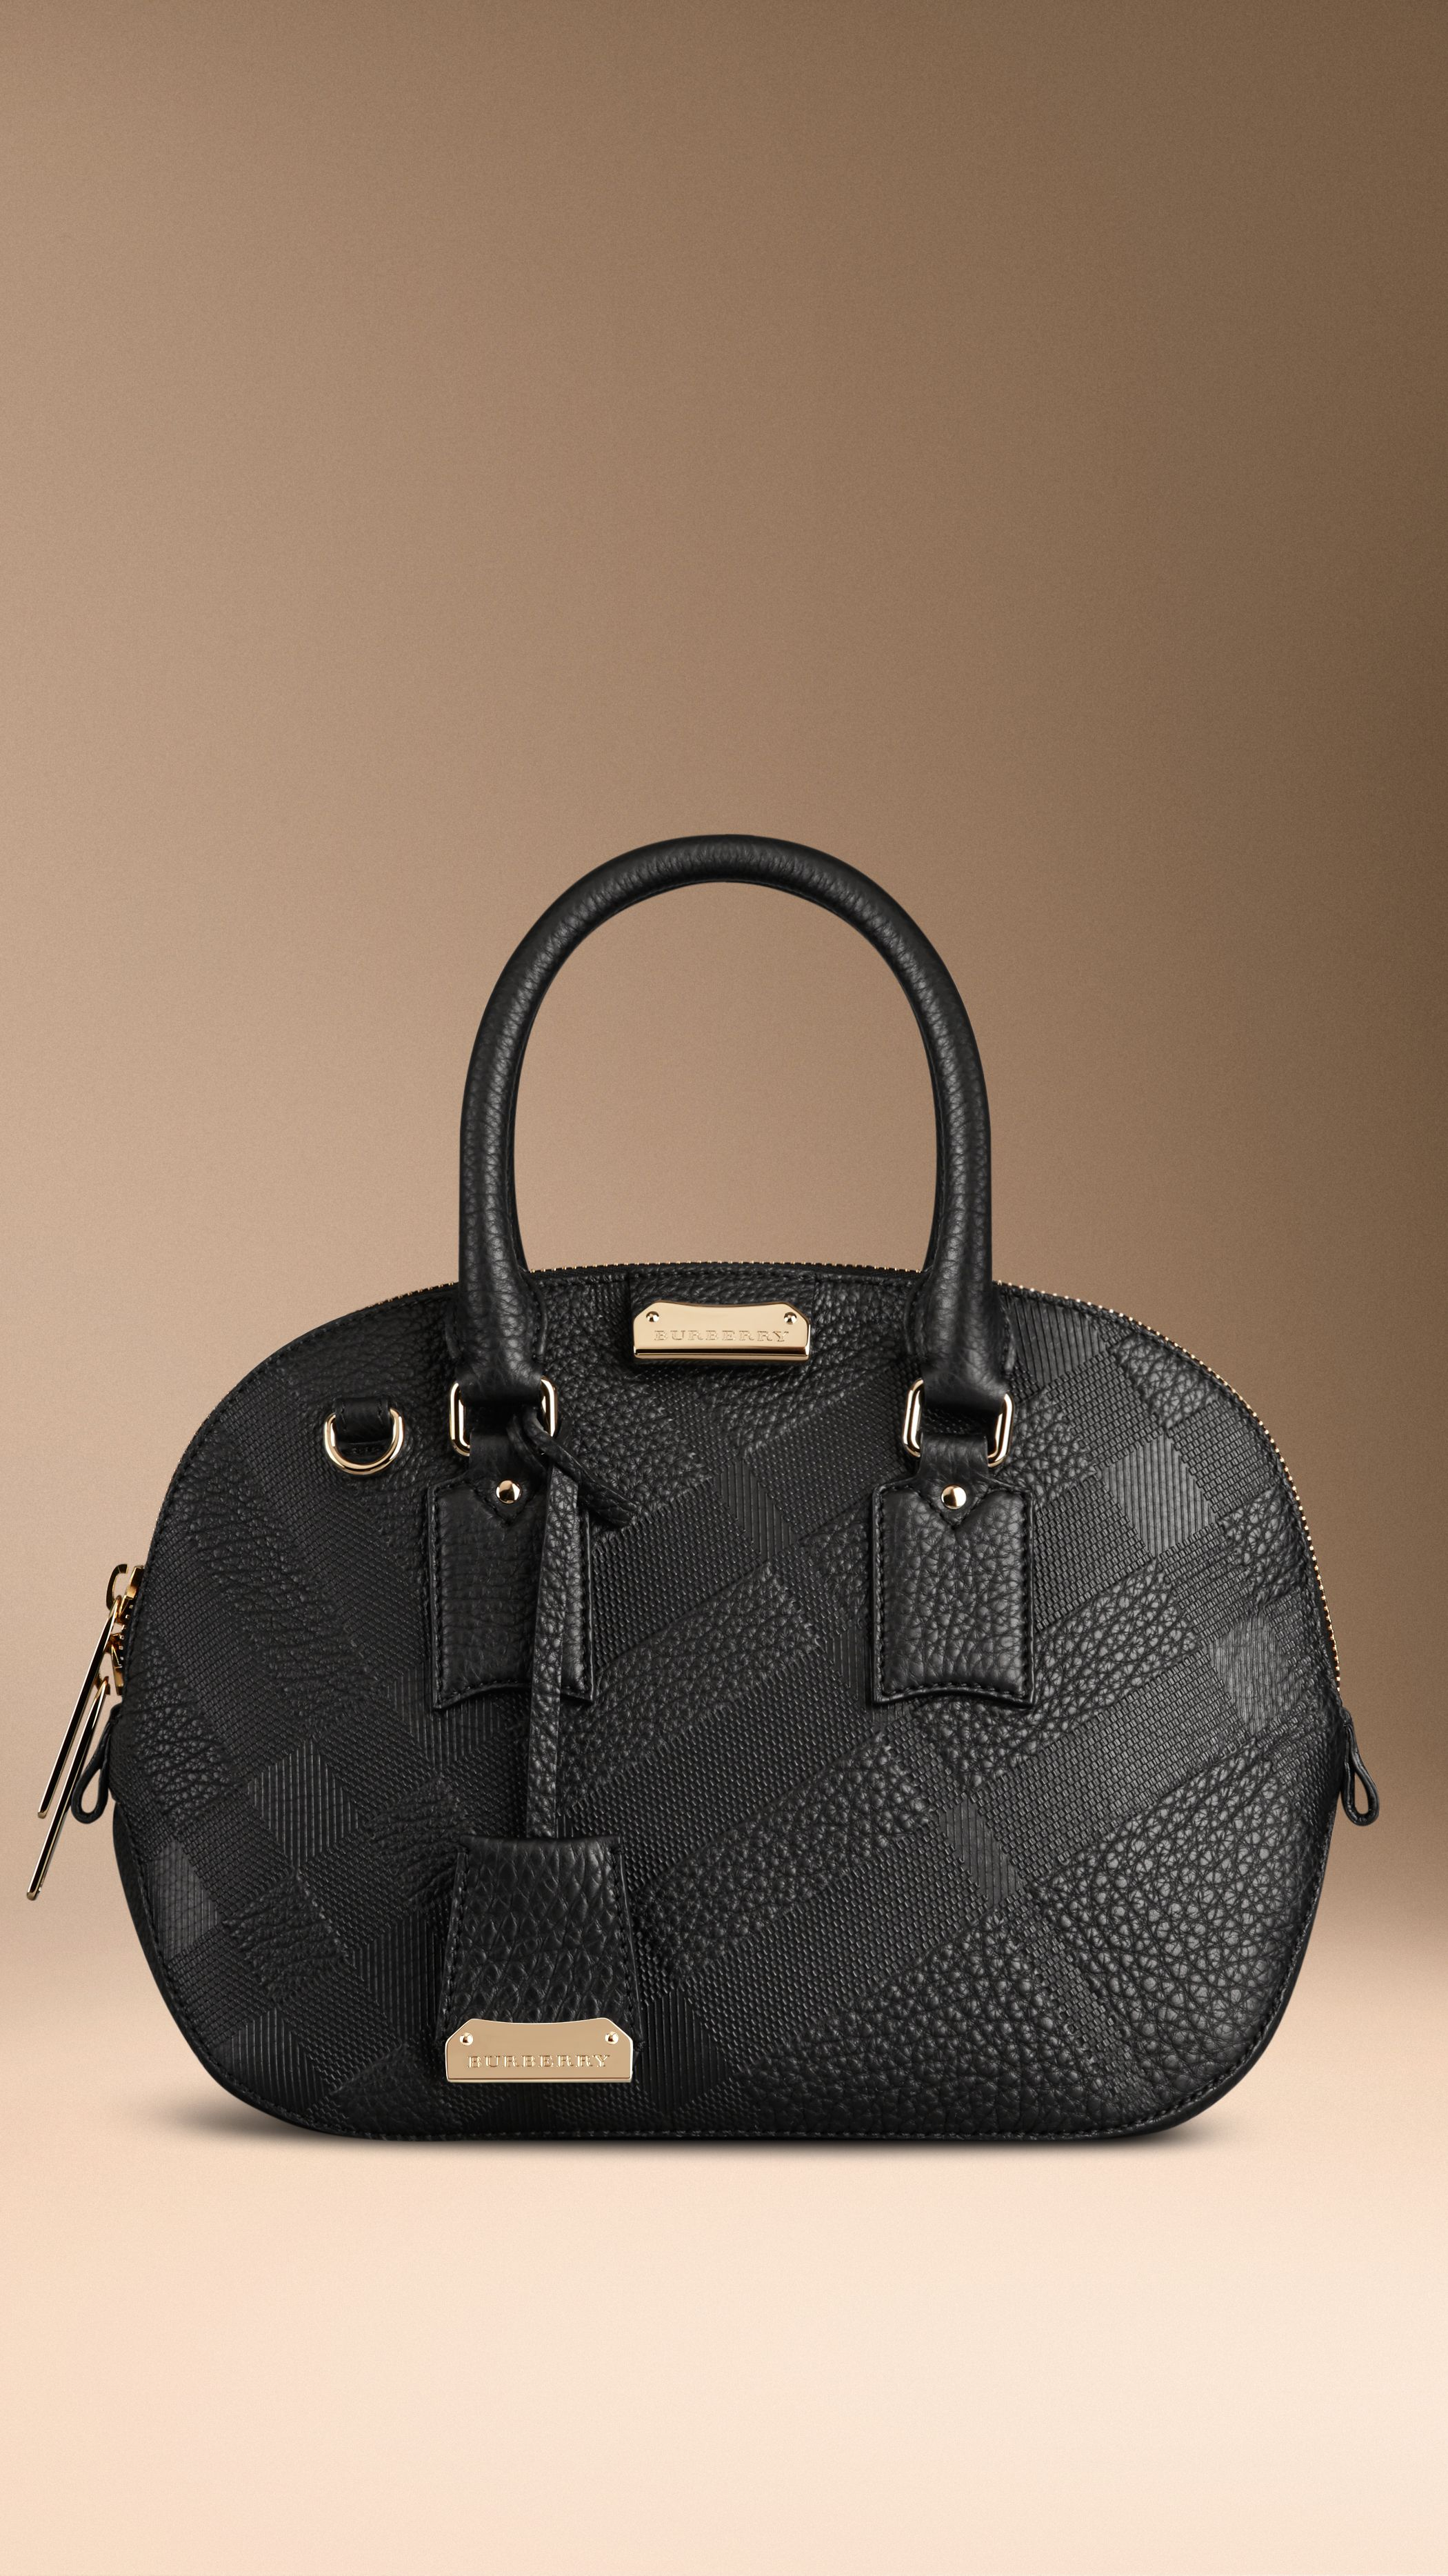 Crafted From Textured Check Embossed Signature Grain Leather The Bowling Bag Has A Structured Shape Inspired By Vintage Luggage Find Perfect Gift This